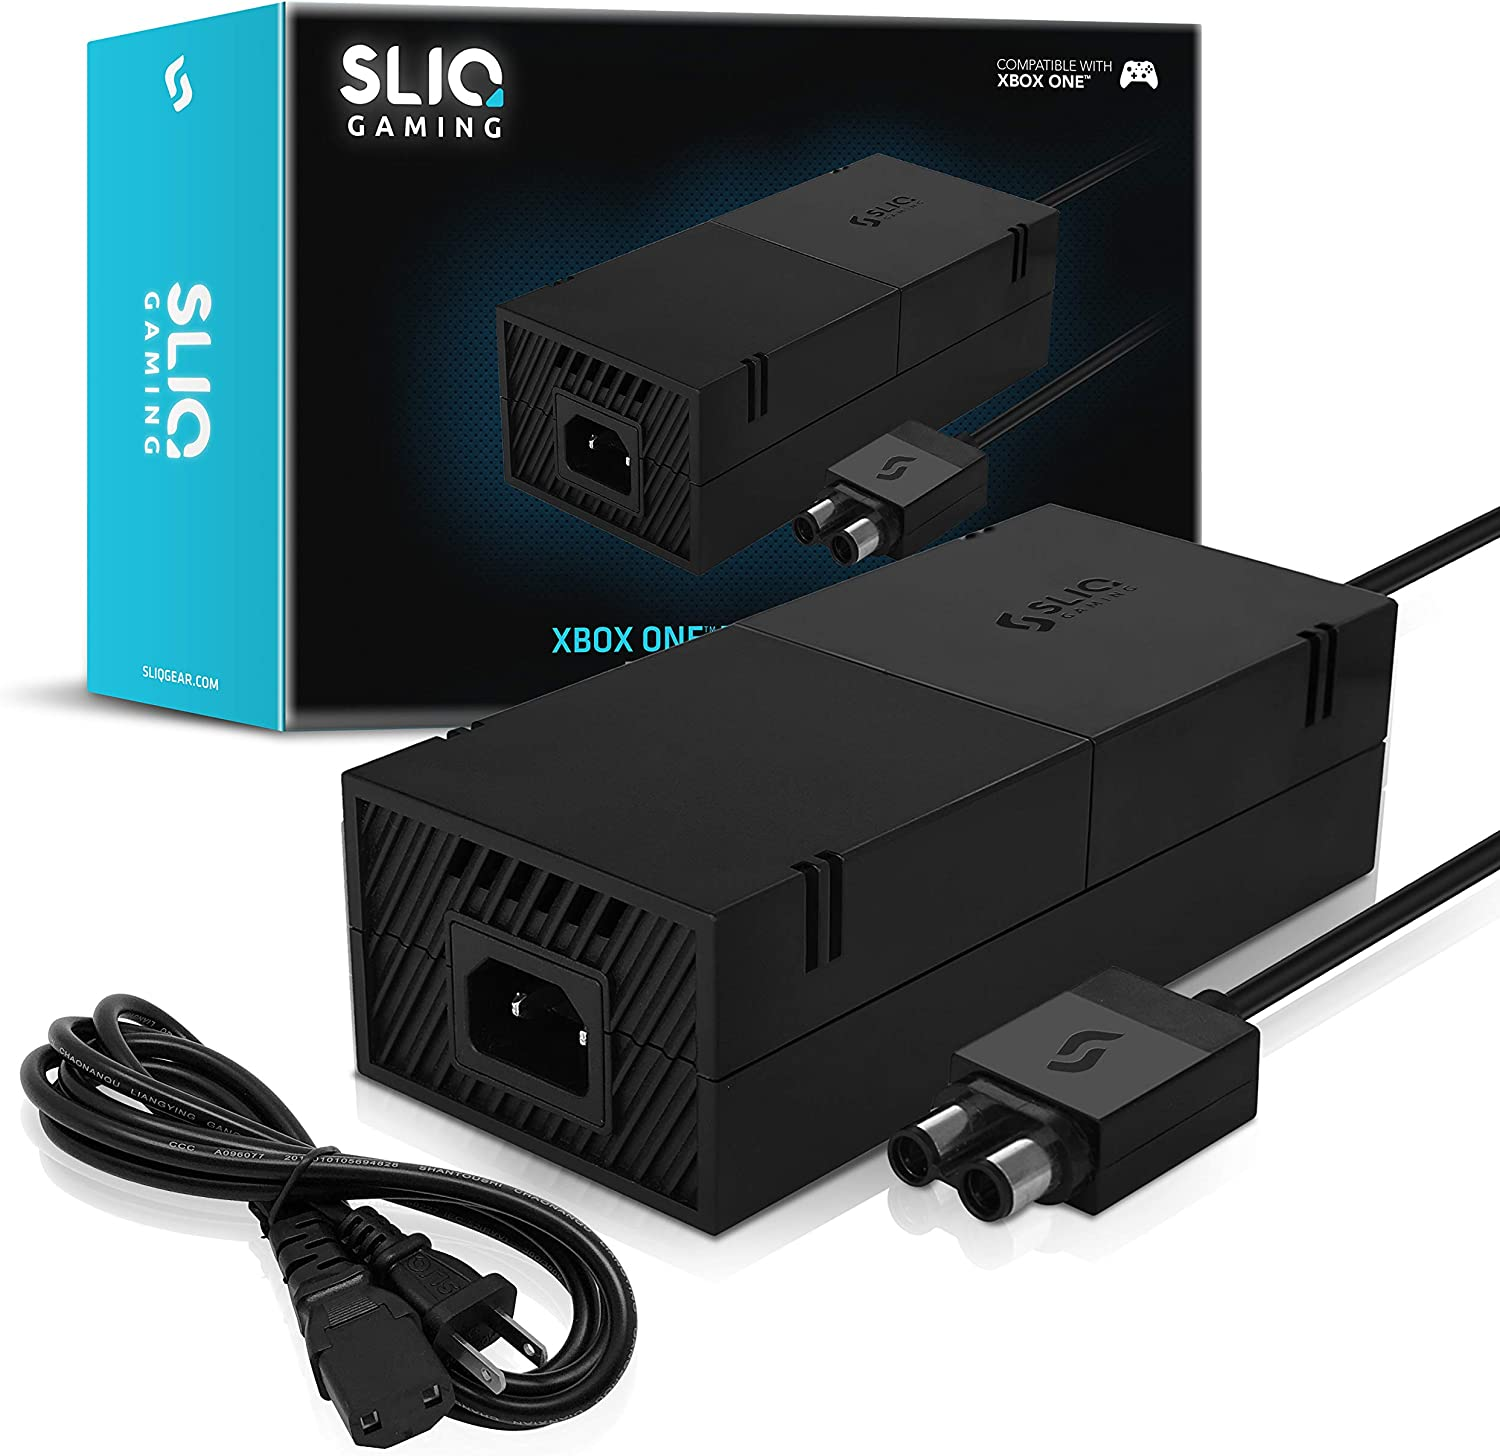 Sliq Gaming Xbox One Power Supply Brick with Power Cable Replacement for Xbox One - 100-240V Auto Voltage - Includes 1-Year Warranty